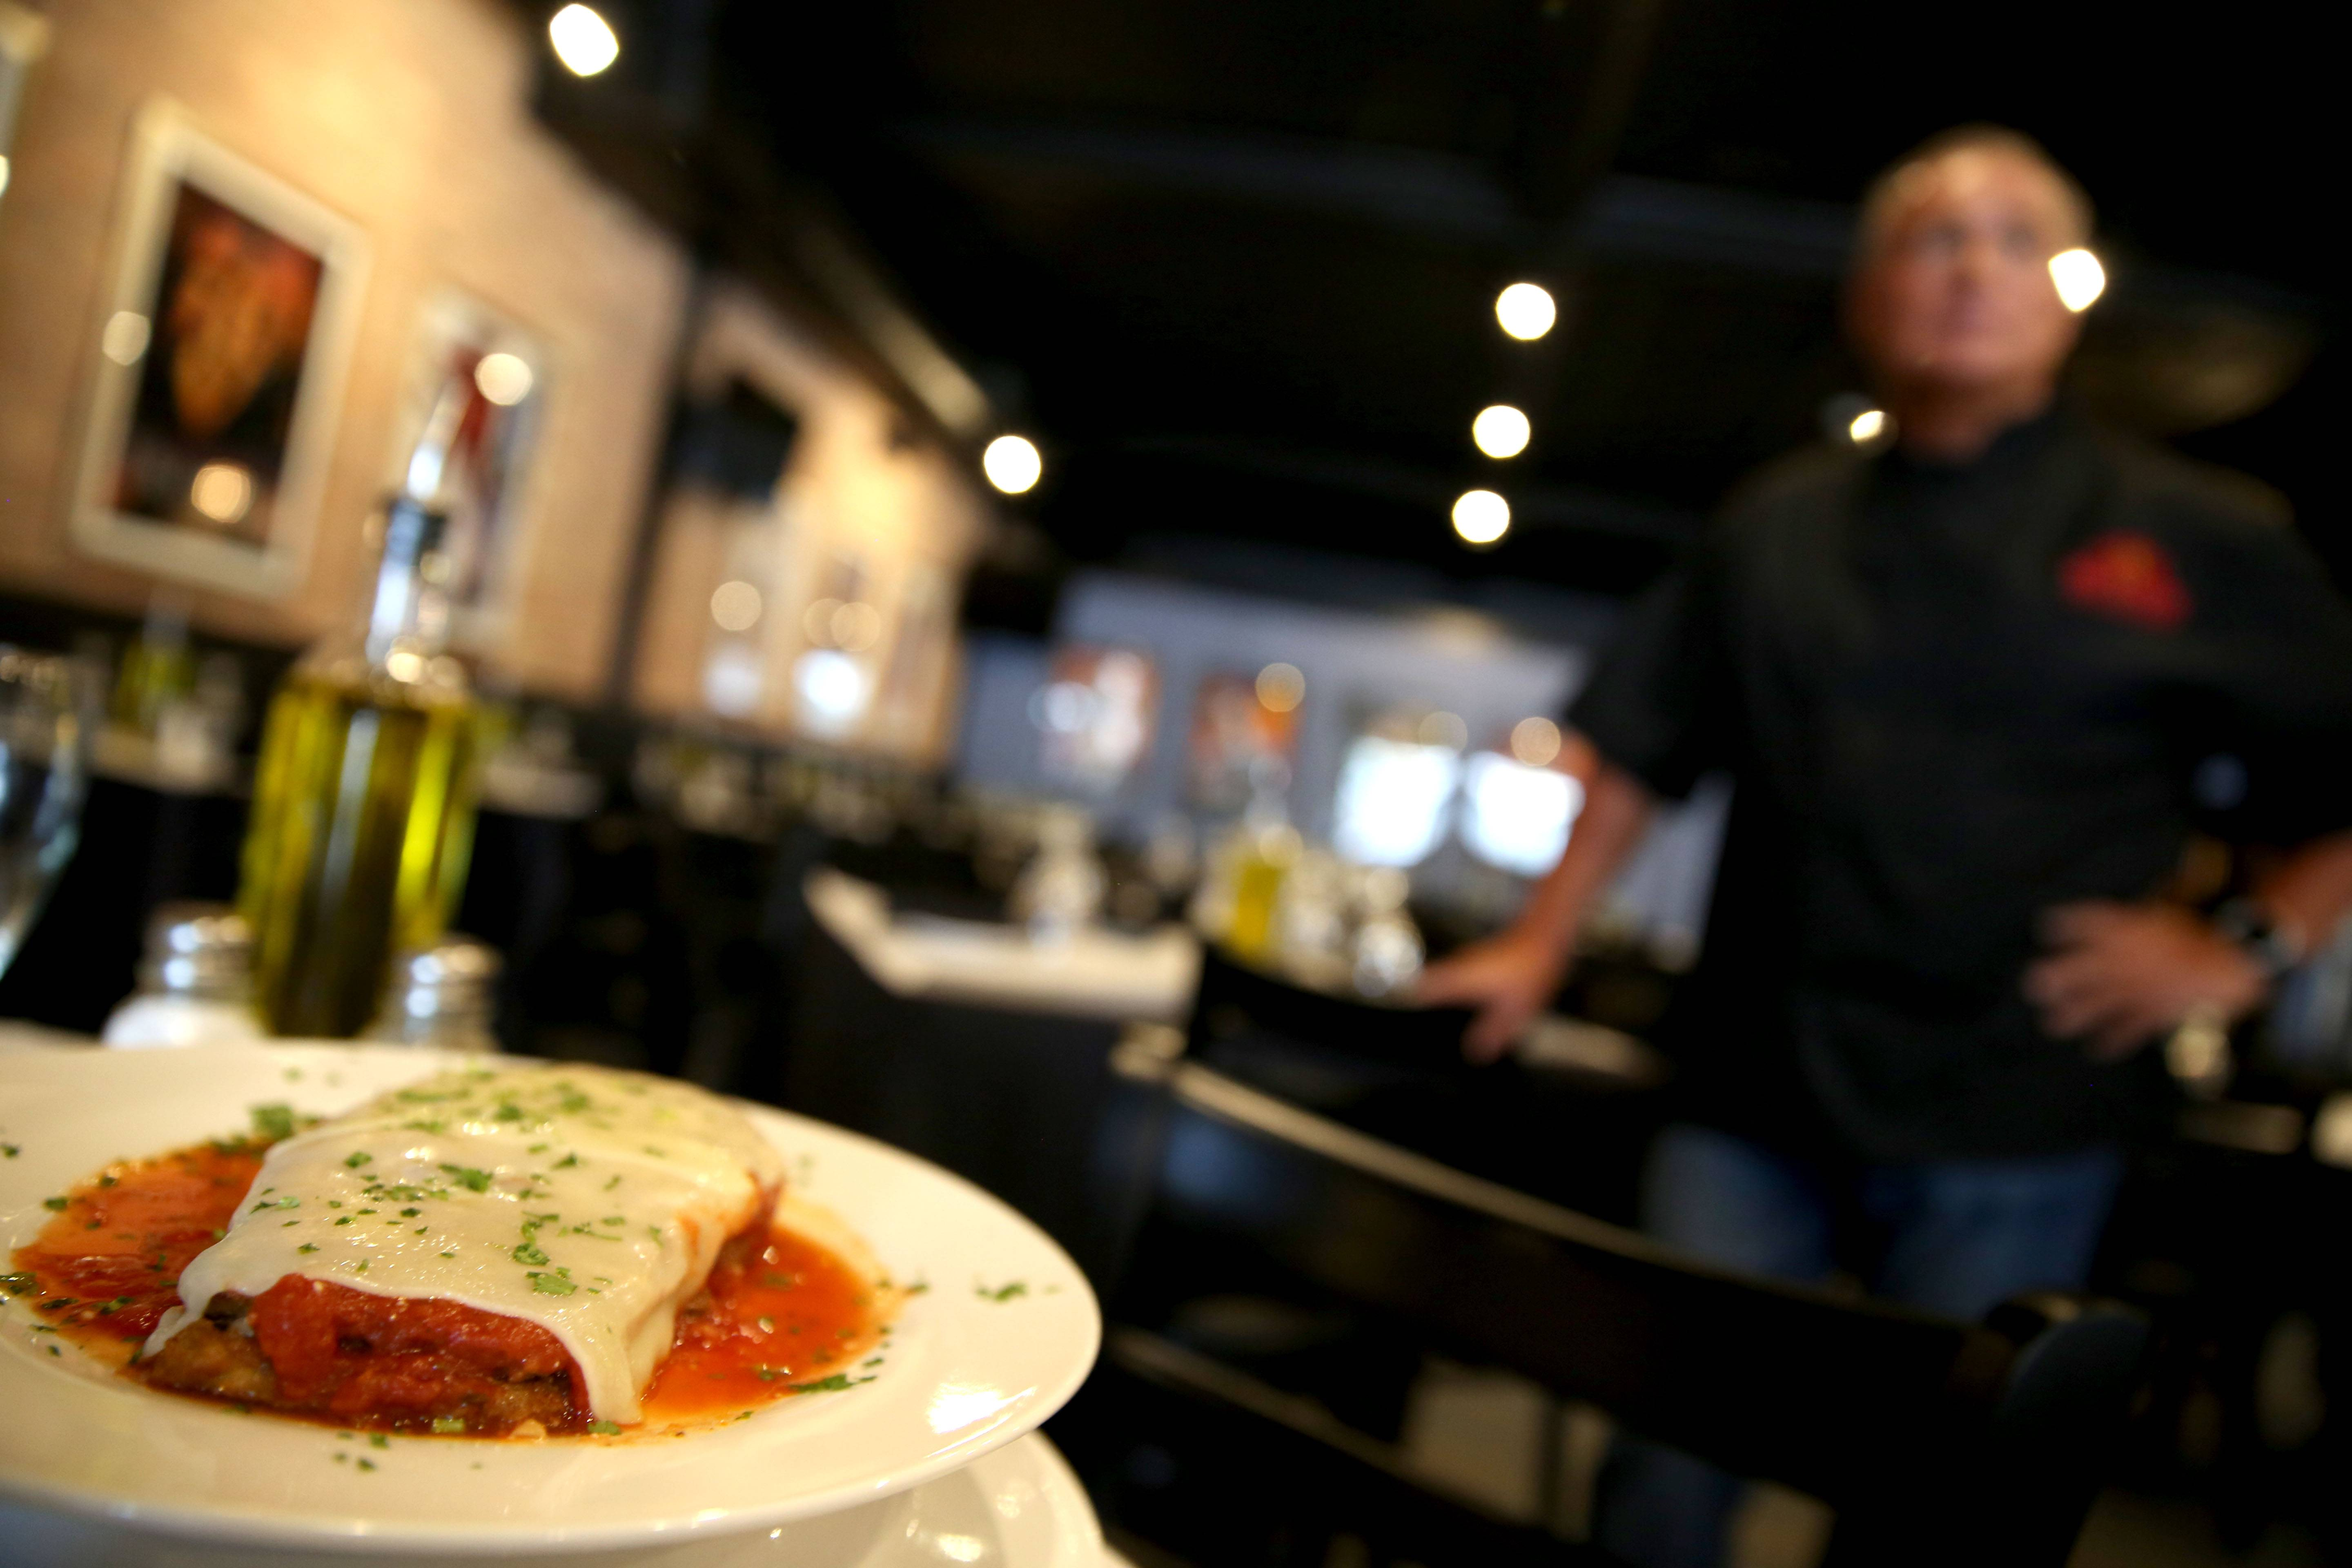 The tender eggplant parmigiana graces the menu at Michael Palmieri's Mia Passione in Woodstock.